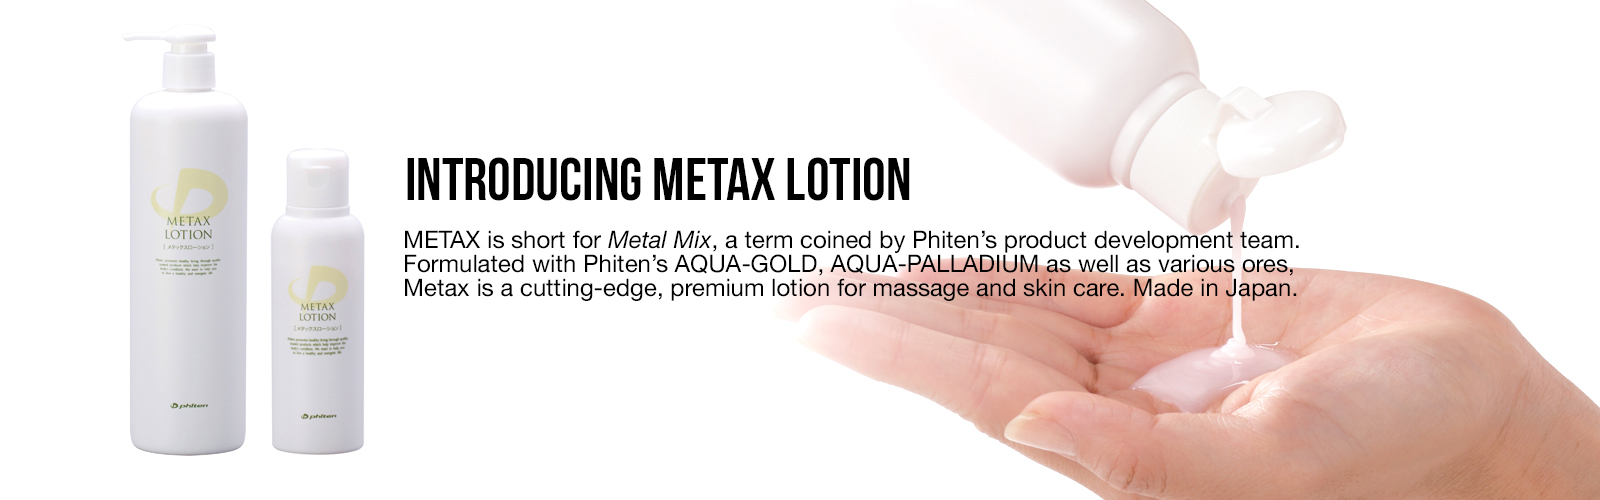 Metax Body Massage & Skin Care Lotion